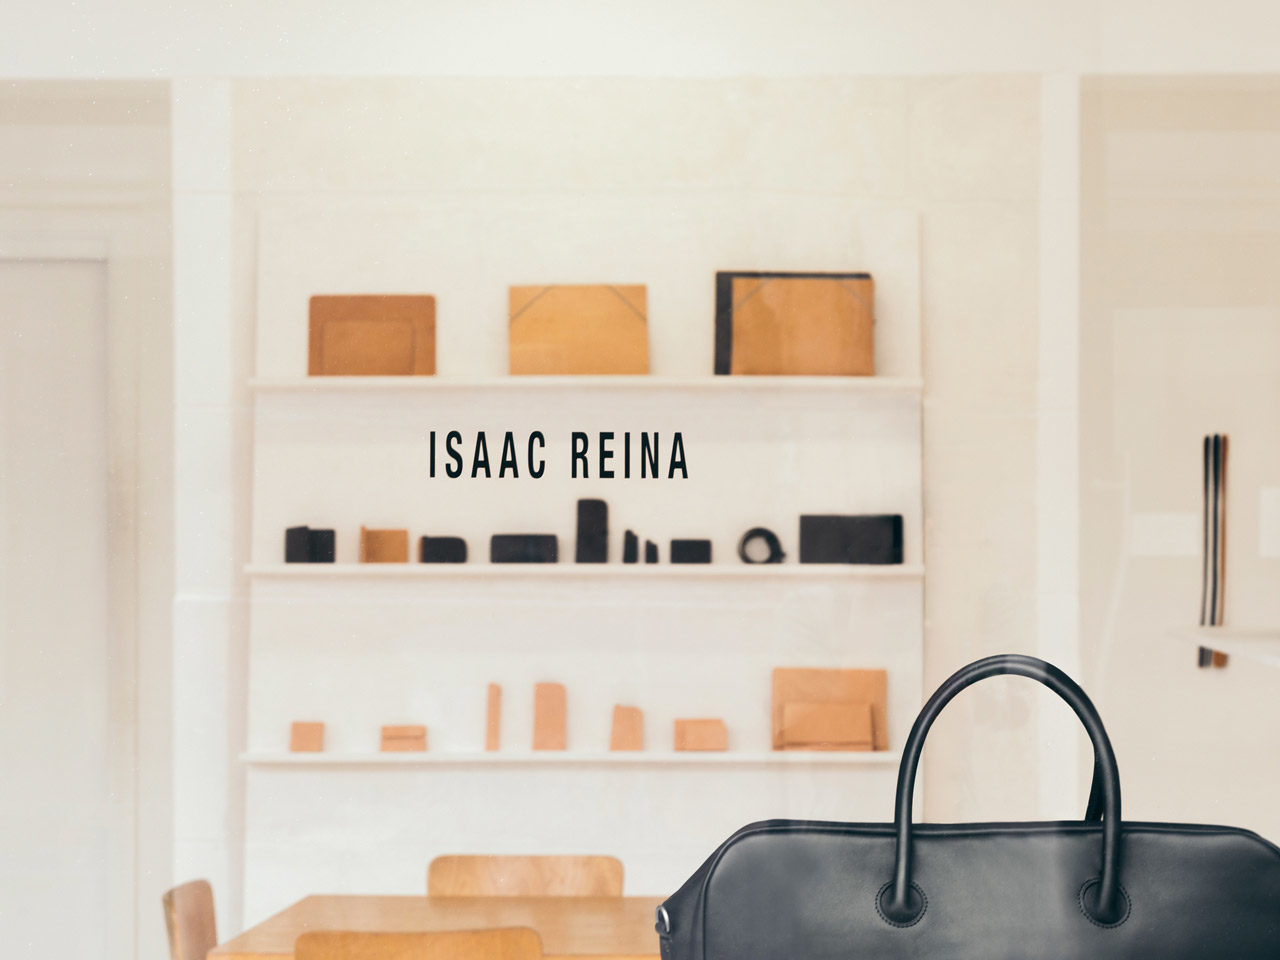 Isaac Reina, maroquinerie luxe et design - Leather Fashion Design (LFD)